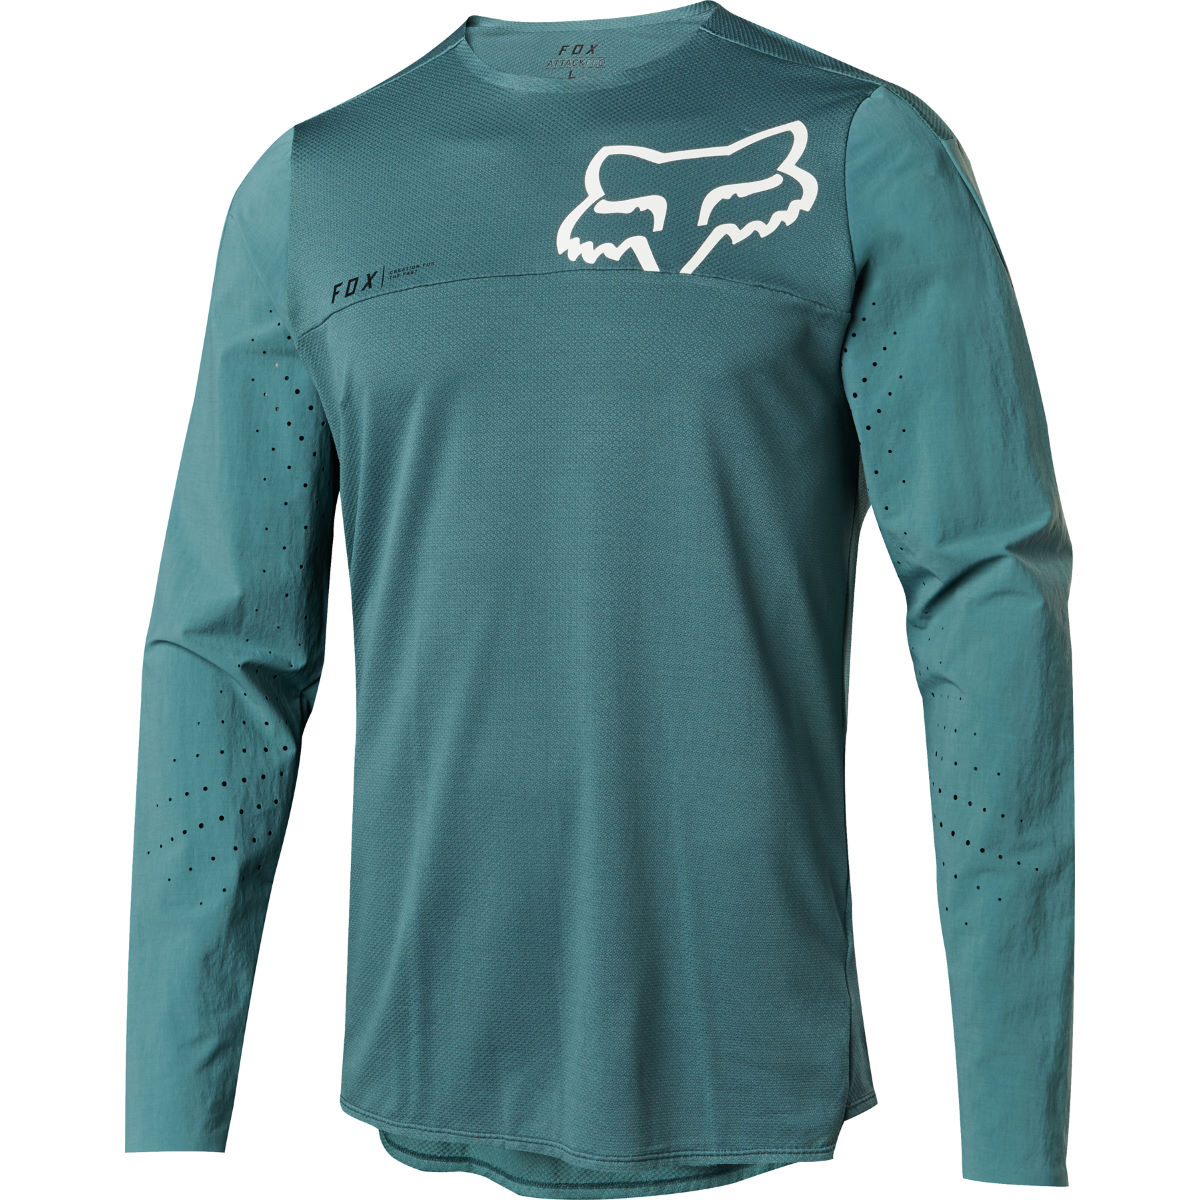 Fox Racing Attack Pro Jersey - L Pine | Long Sleeve Cycling Jerseys